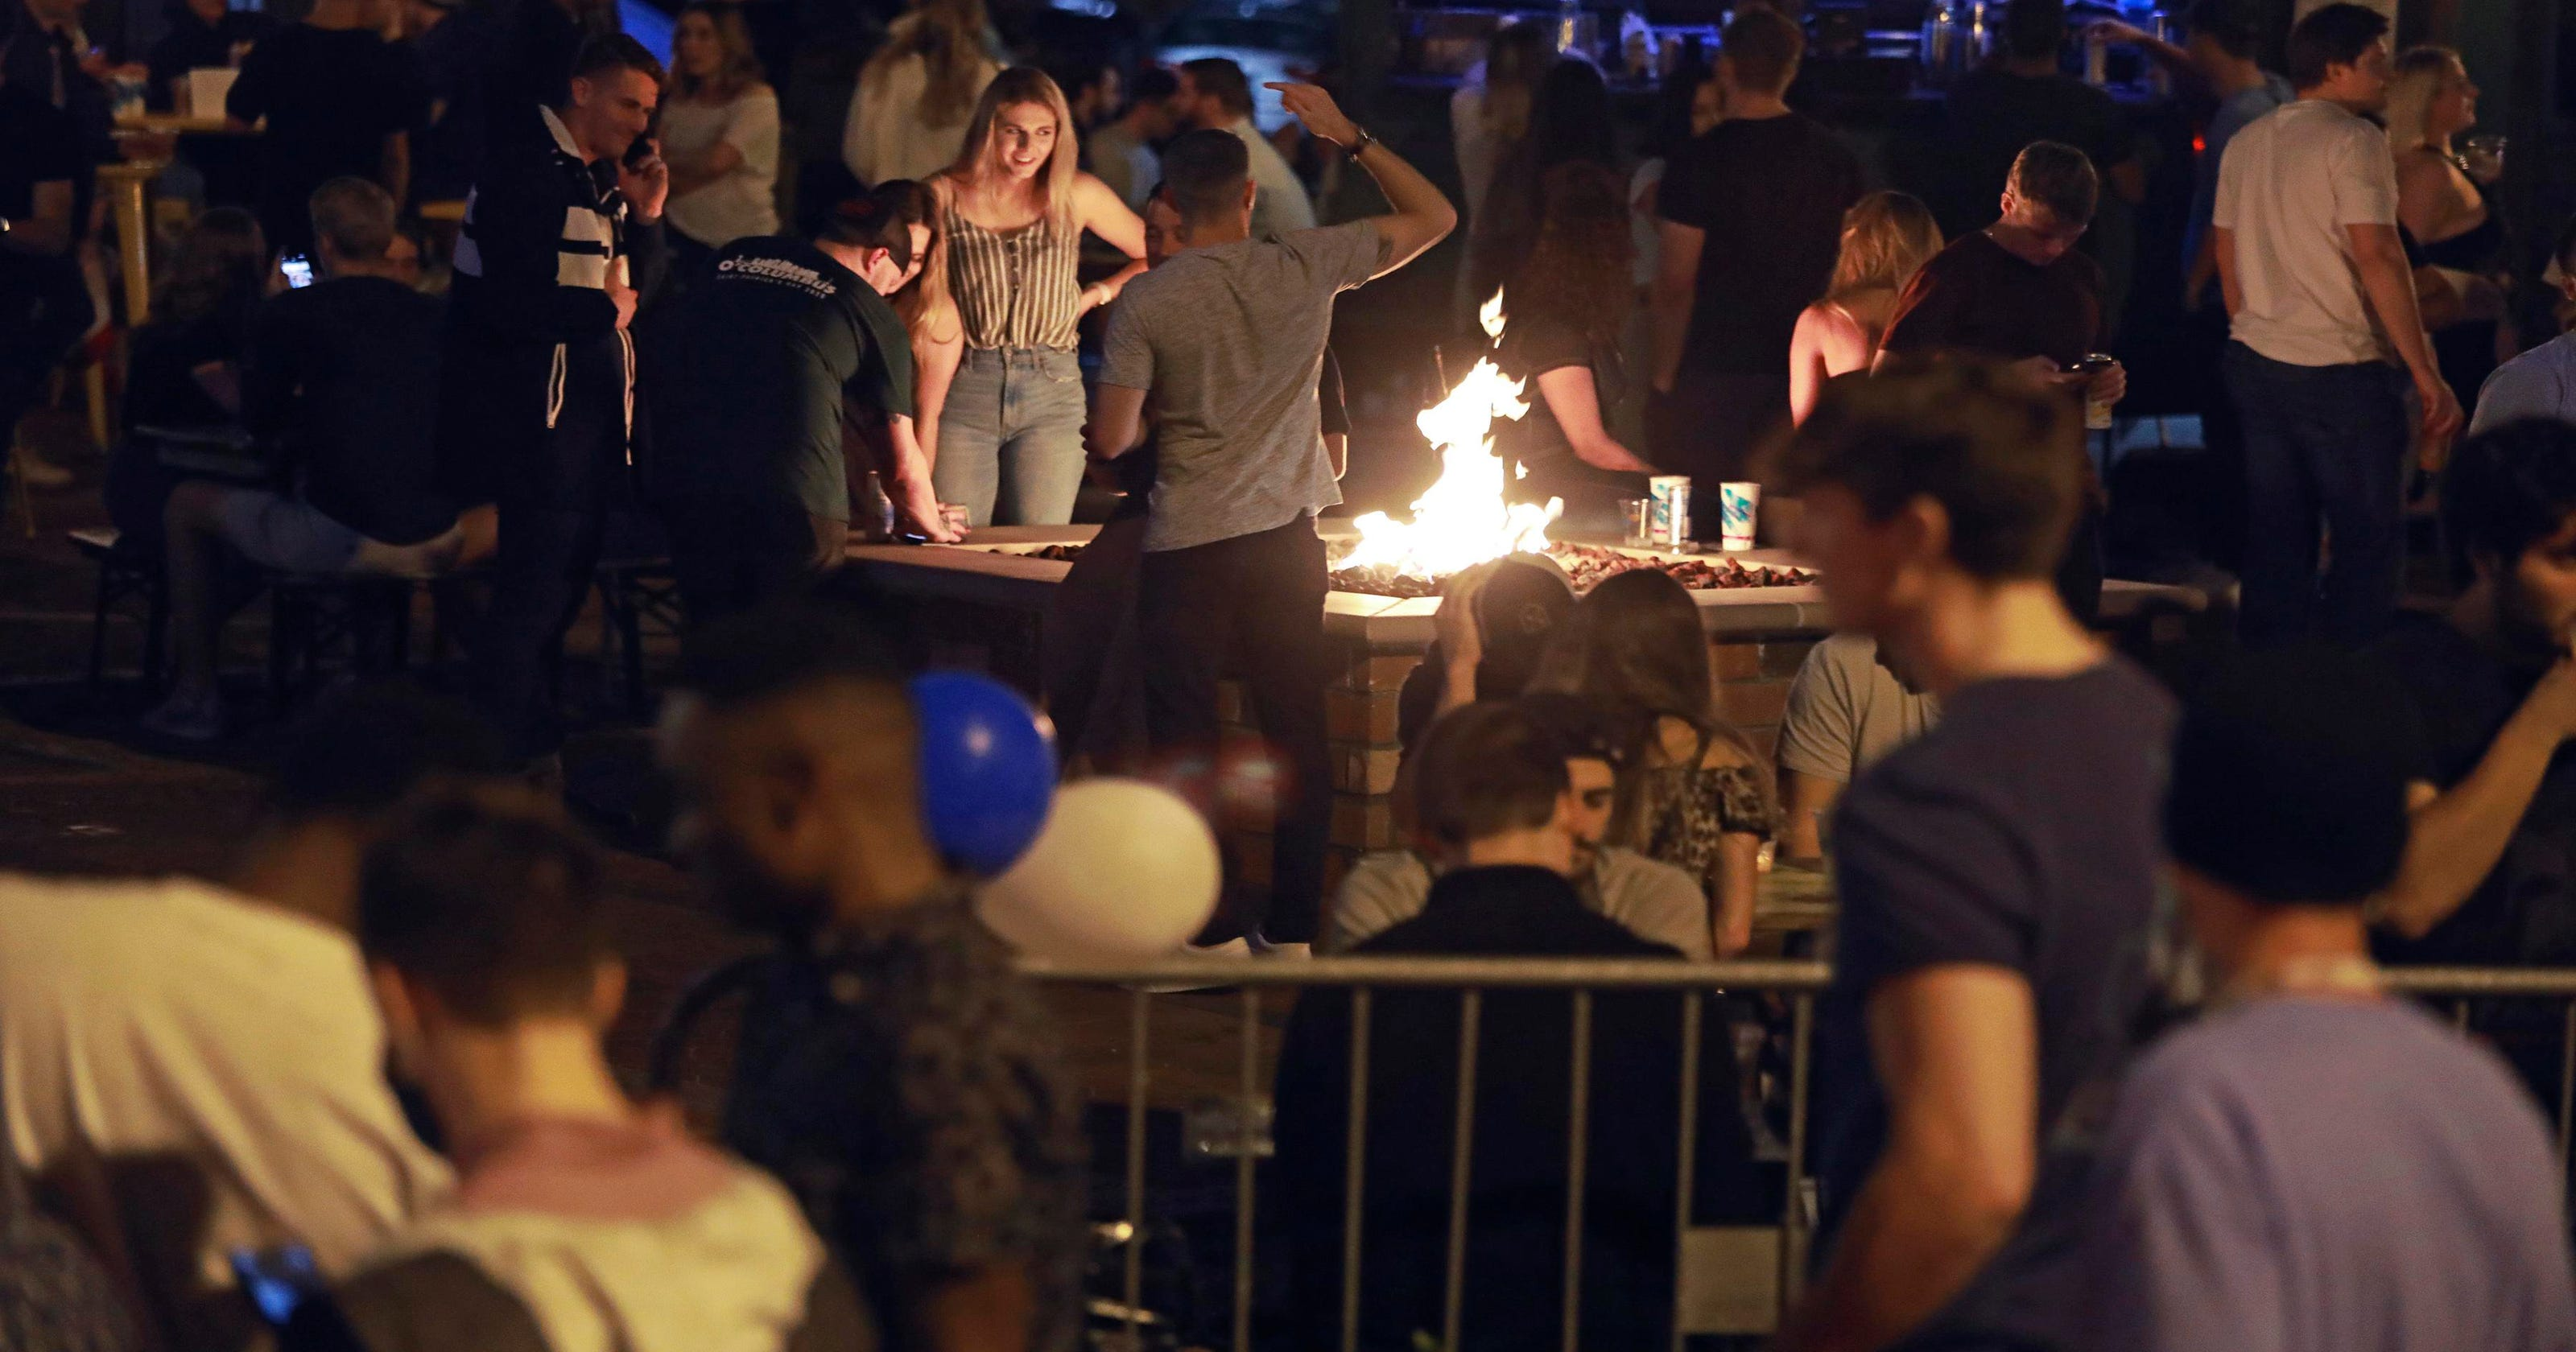 Bar trouble, gym defiance, al fresco dining: News from around our 50 states